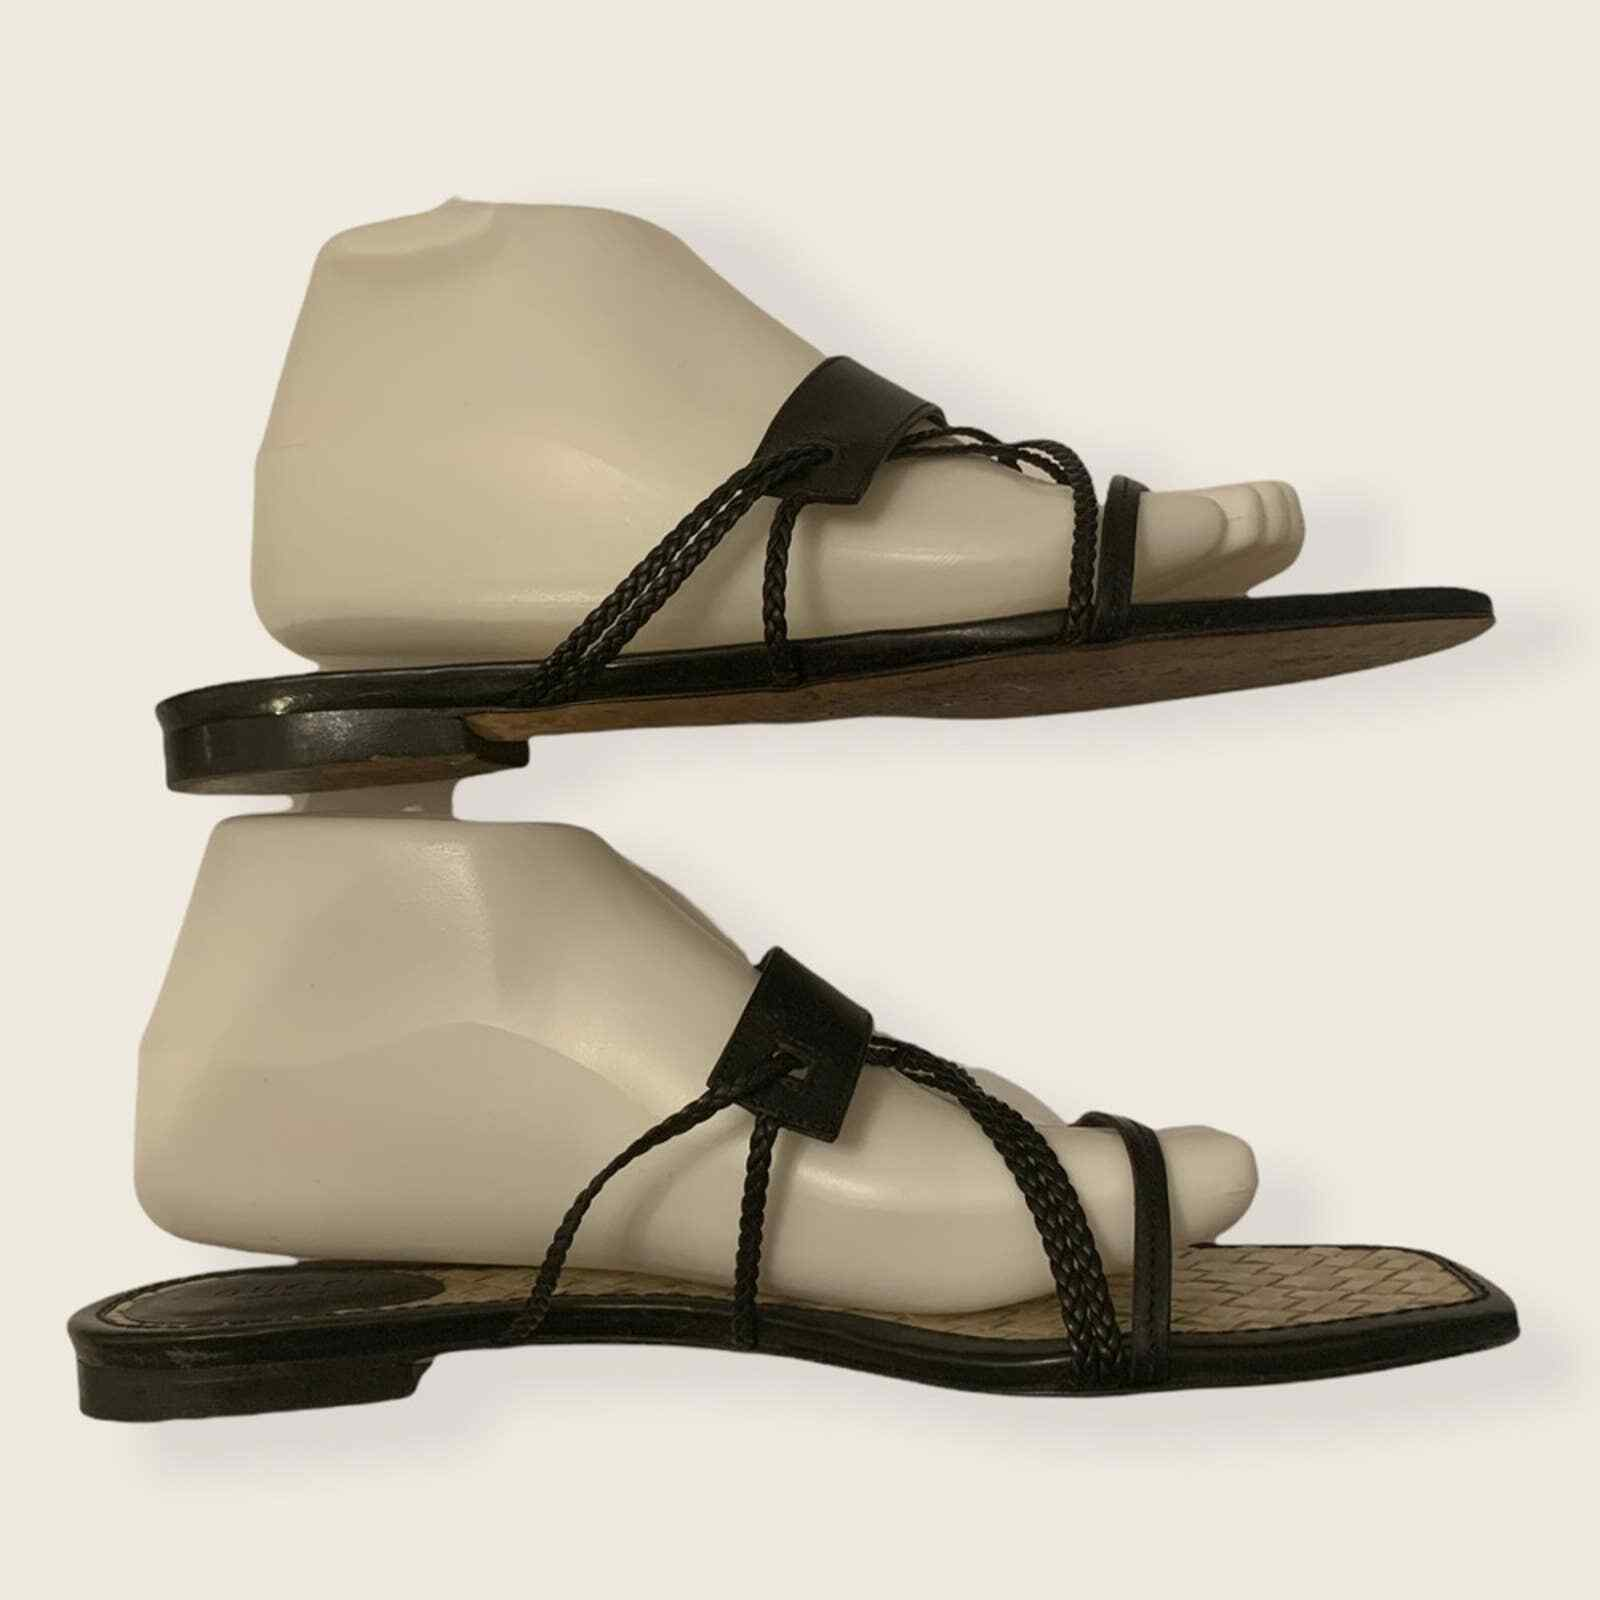 Vintage Gucci Strappy Sandals - image 4